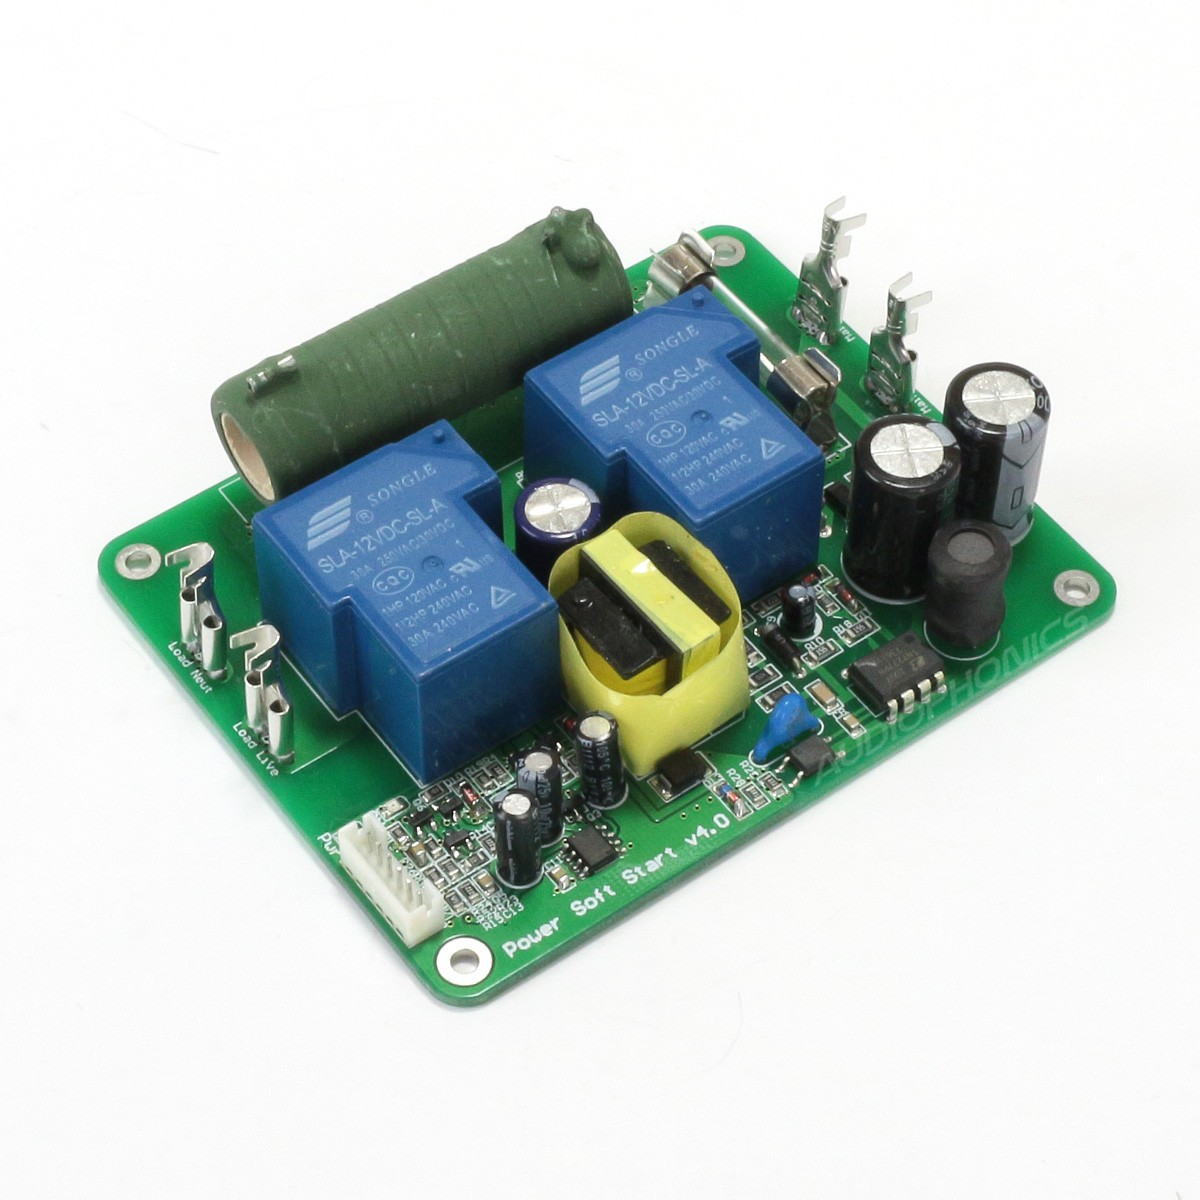 CONNEX POWER SOFT START V4 Power On and Delay Soft Start Board for Amplifier